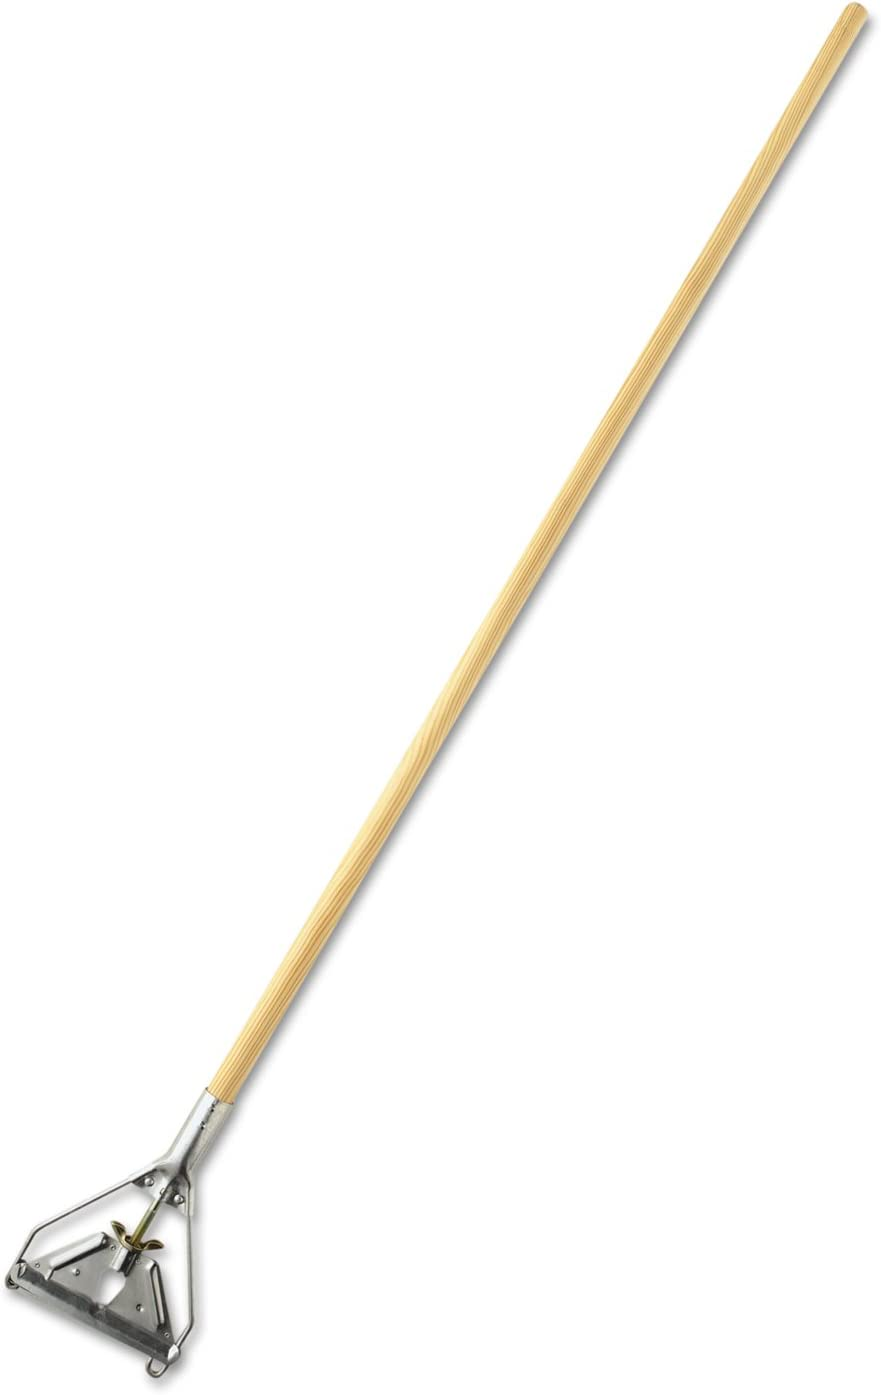 Rubbermaid Commercial H216 Gripper Hardwood Mop Handle 1 1//8 dia x 60 Natural//Yellow